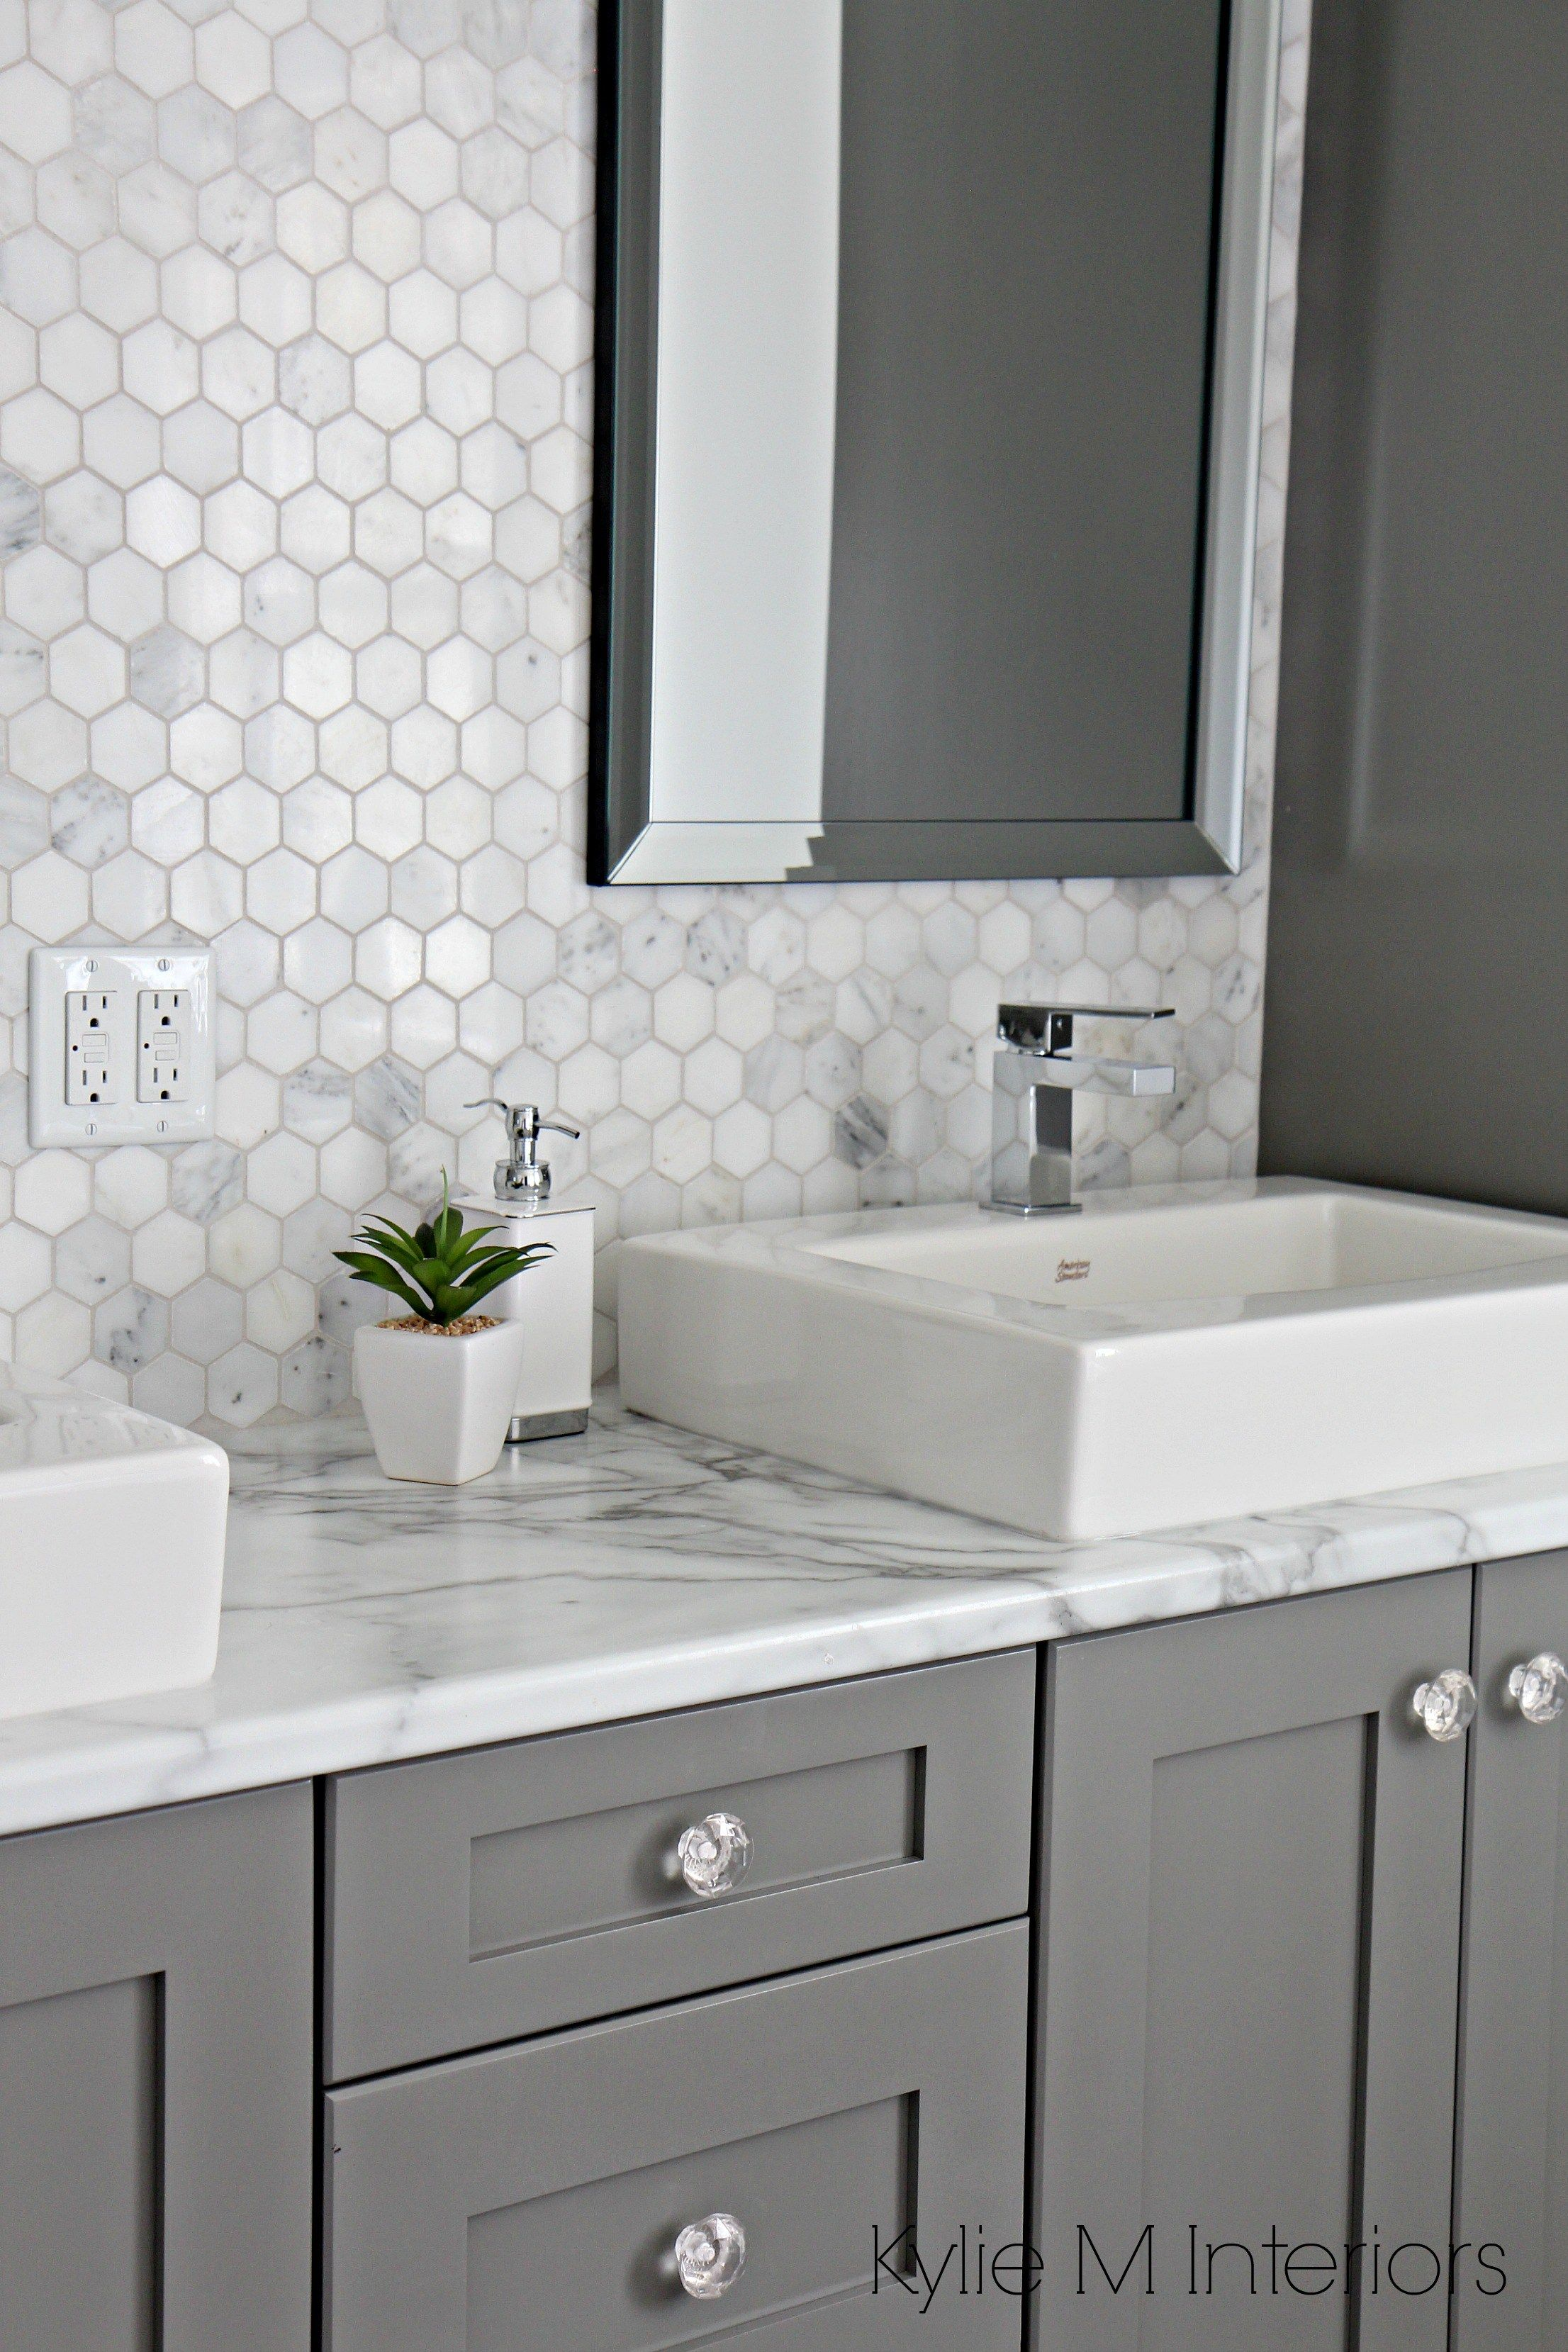 Incroyable Formica 180FX Calacatta Marble Laminate Countertop Hexagon Mosaic Marble Backsplash And Chelse Gray Vanity In Ensuite Bathroom With  Raised Sinks By Kylie M  ...